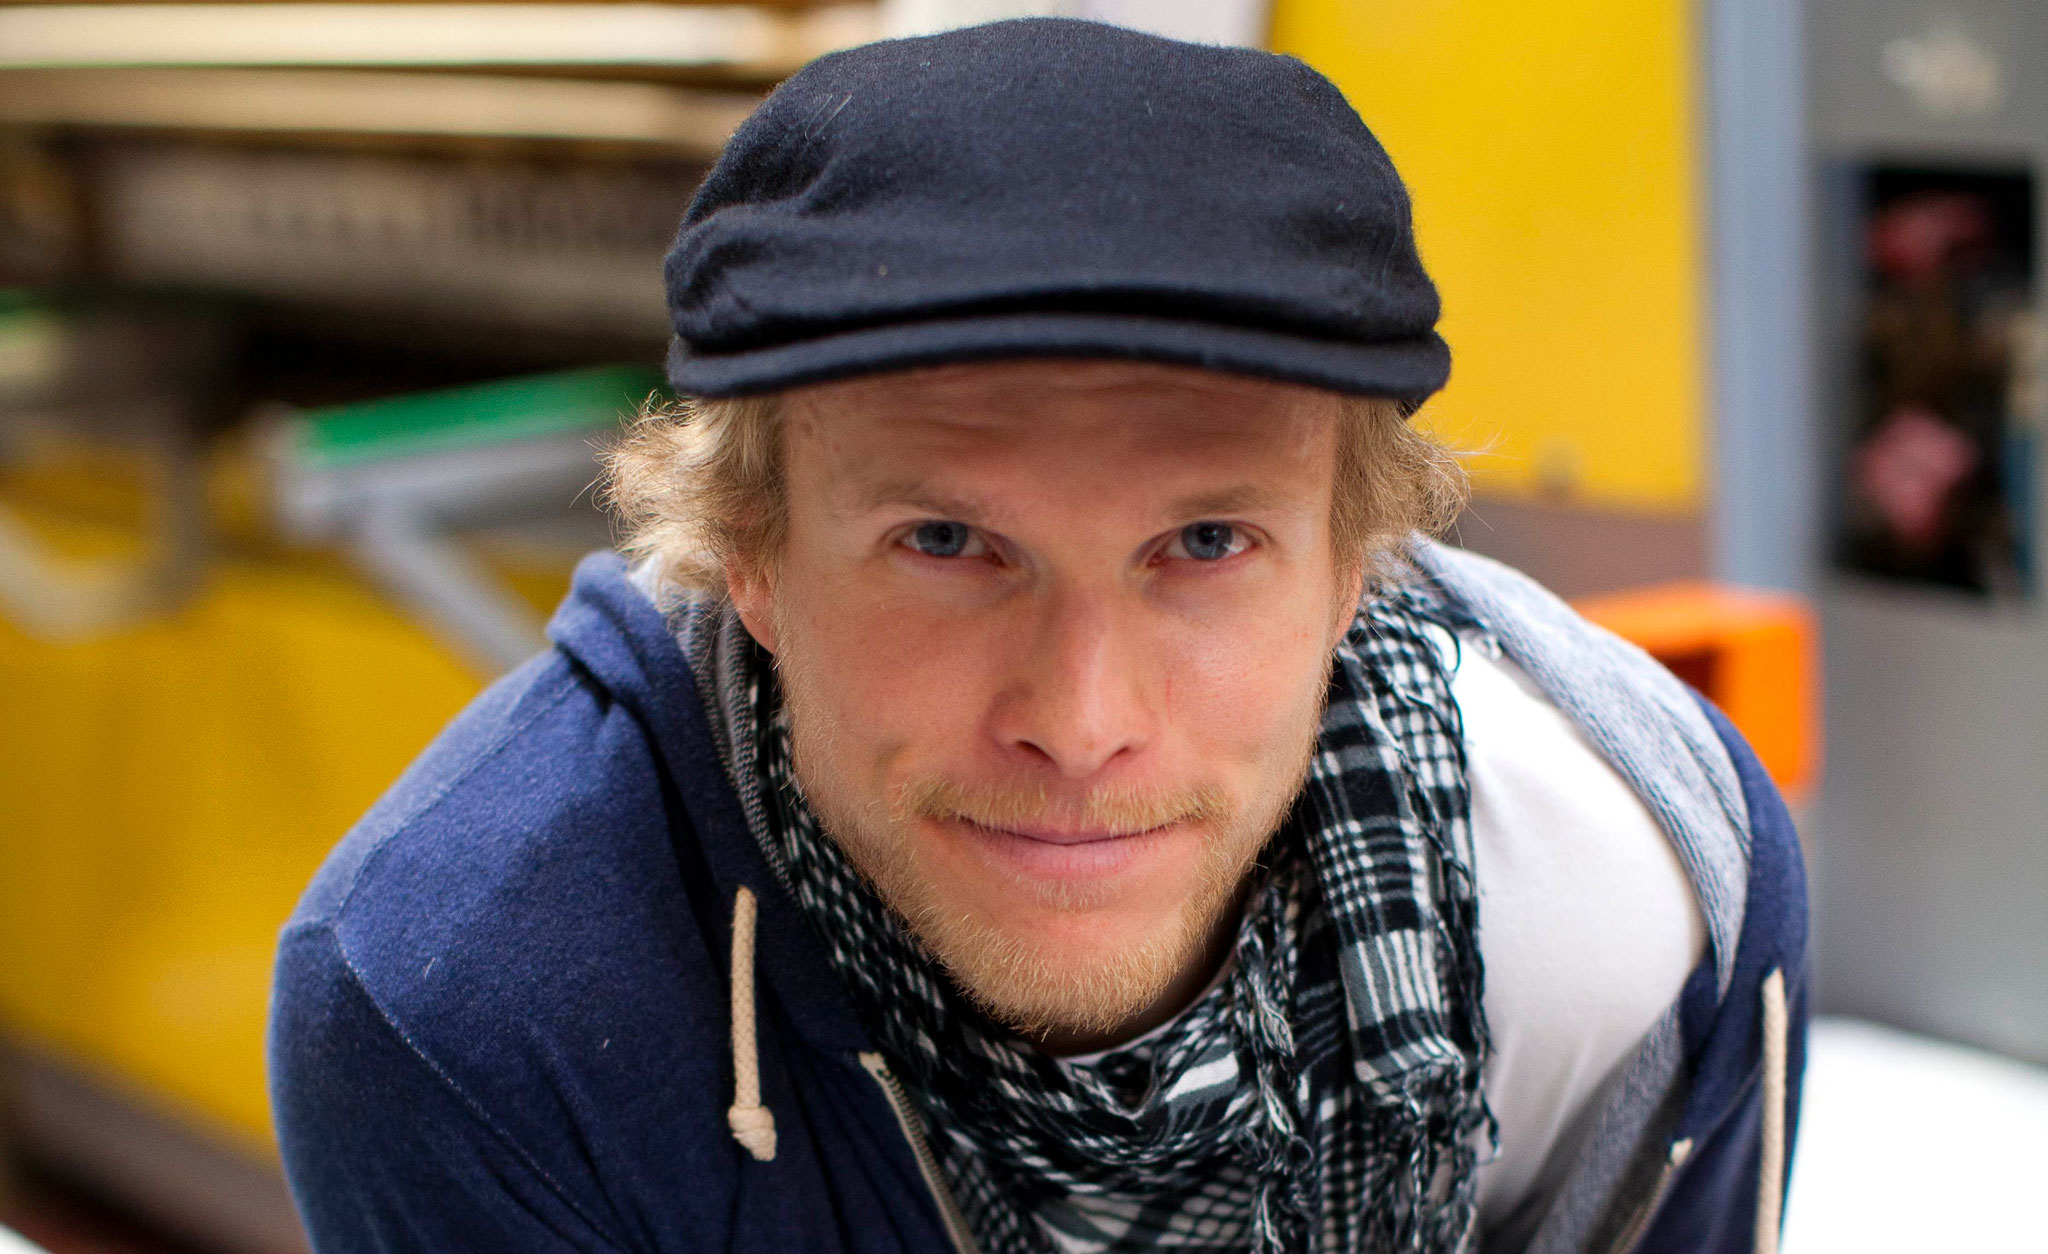 Andreas Fransson was a Swedish ski mountaineer who lived in Chamonix, France.